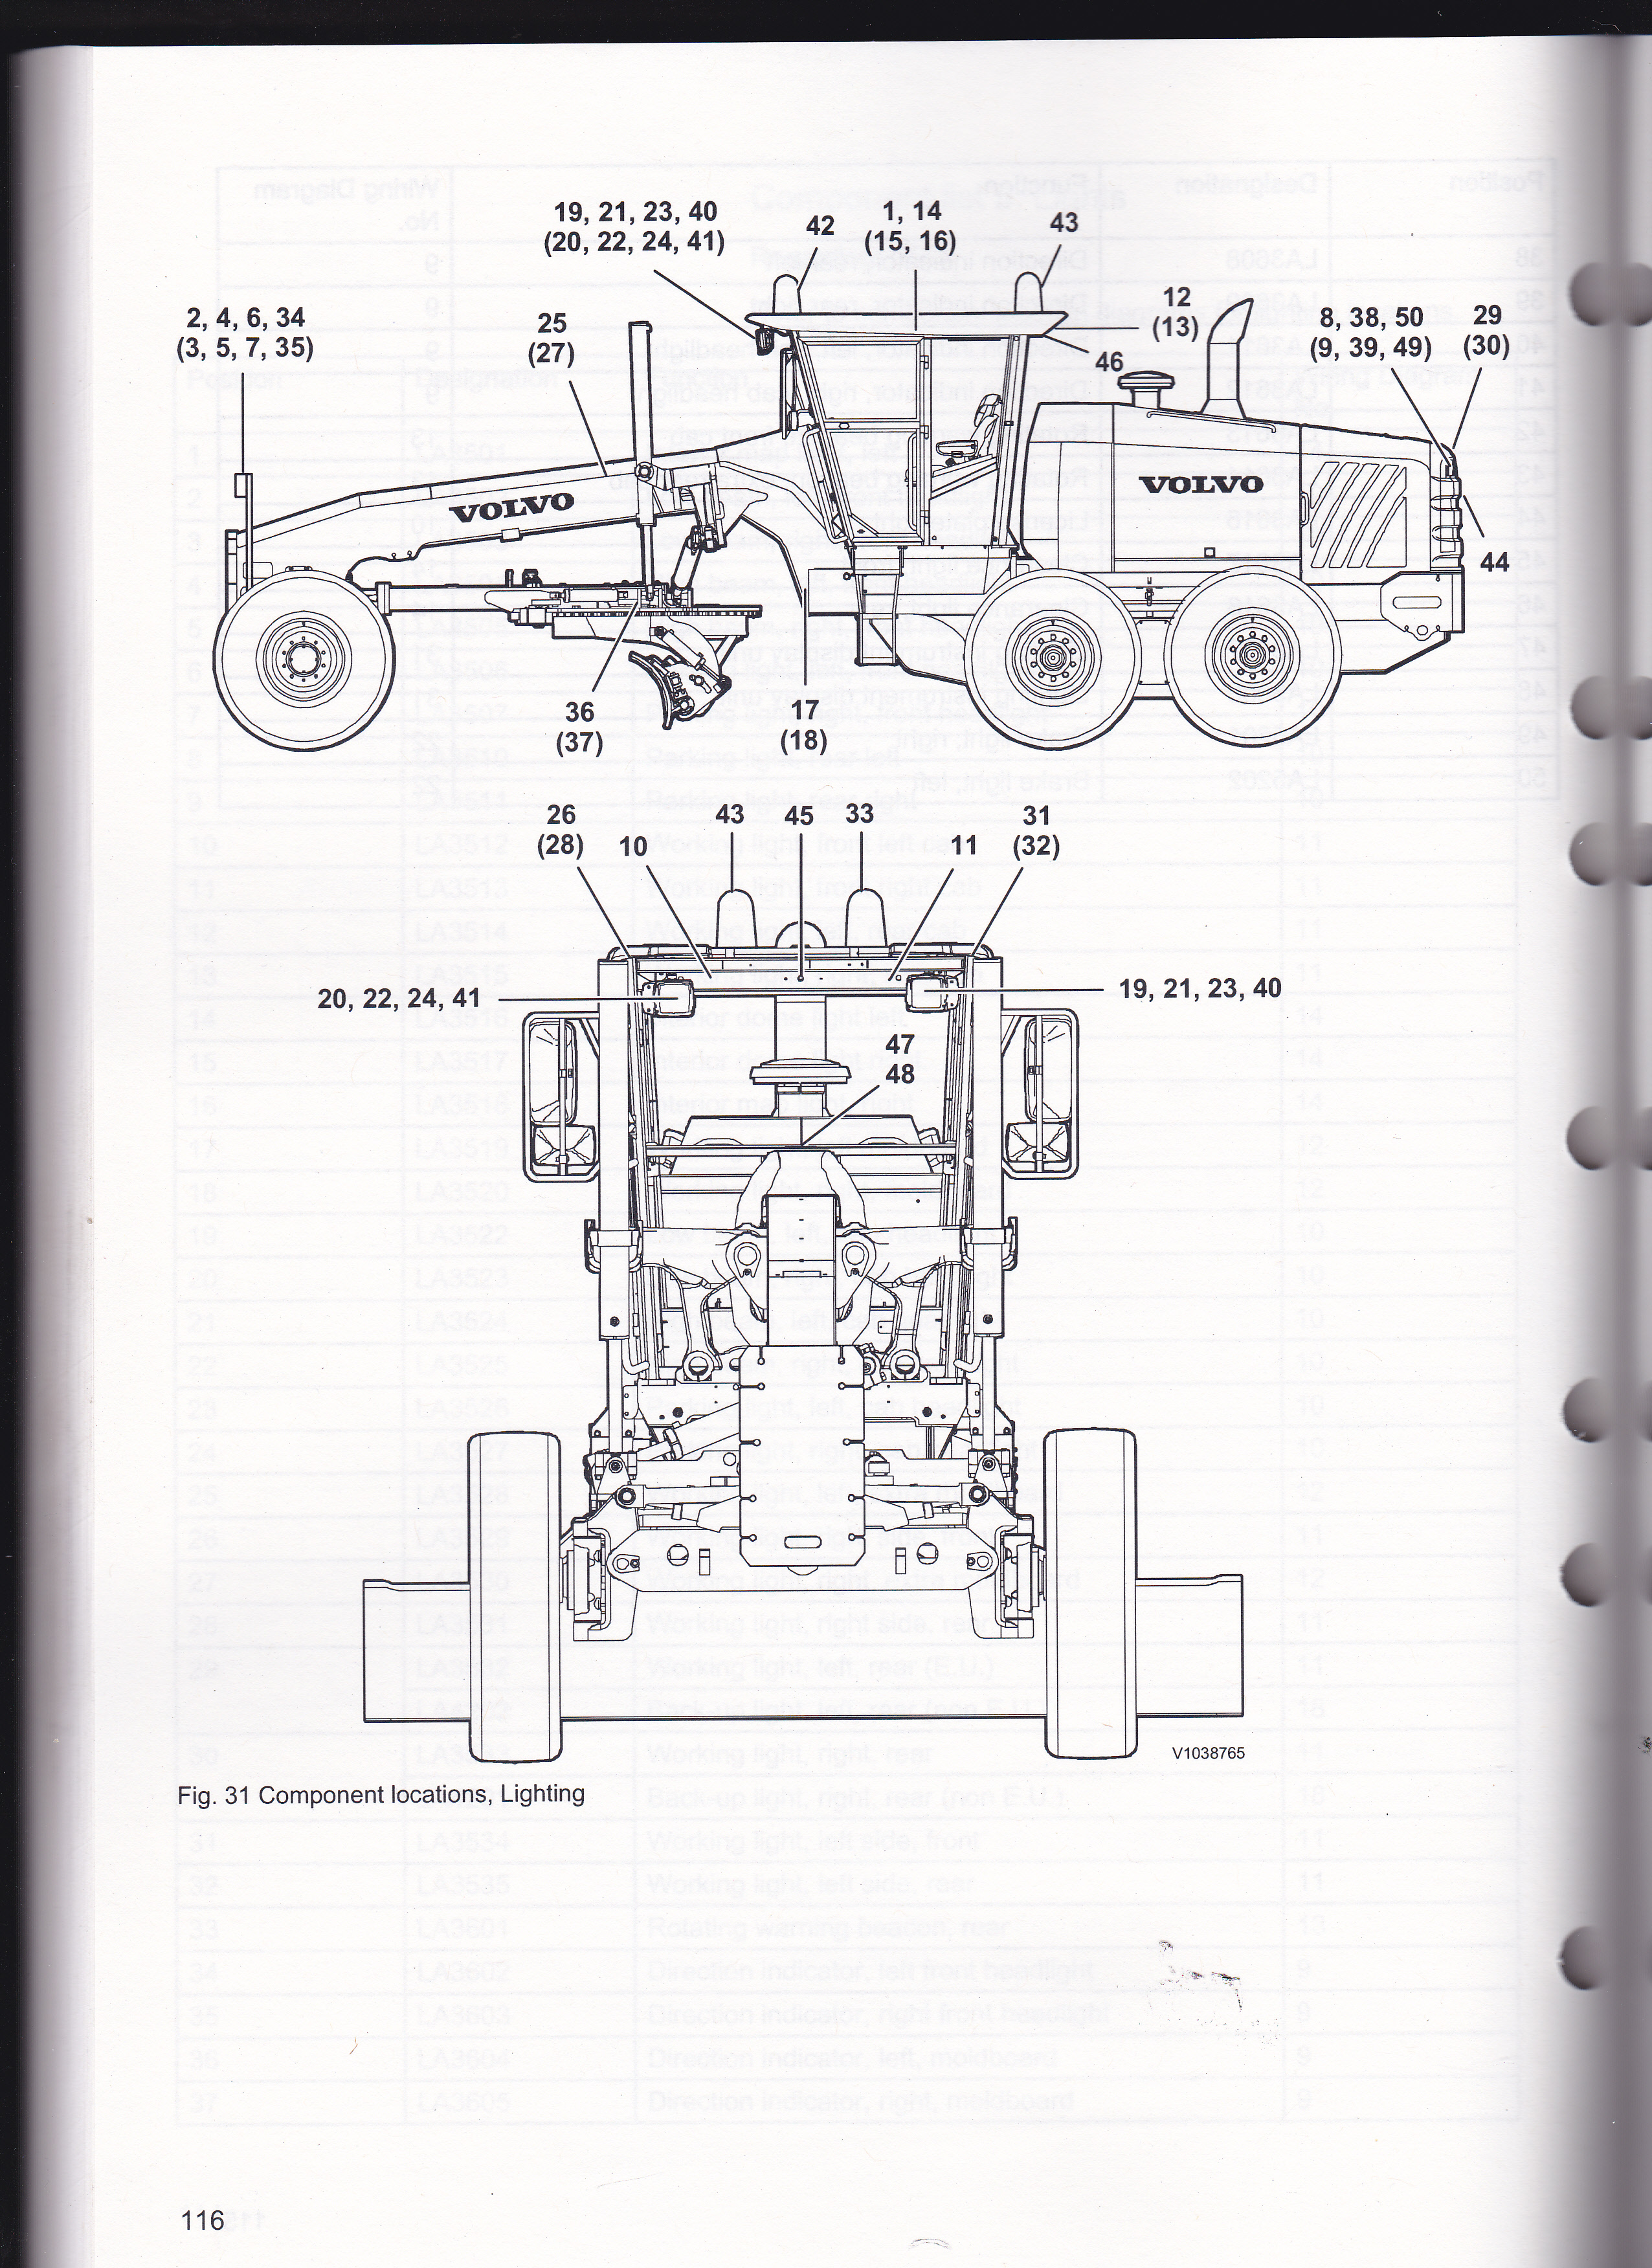 I am looking For a wiring schematic for a 940G volvo grader for the rear  work lights that are mounted in the rear grill | Volvo Roller Wiring Diagram |  | JustAnswer